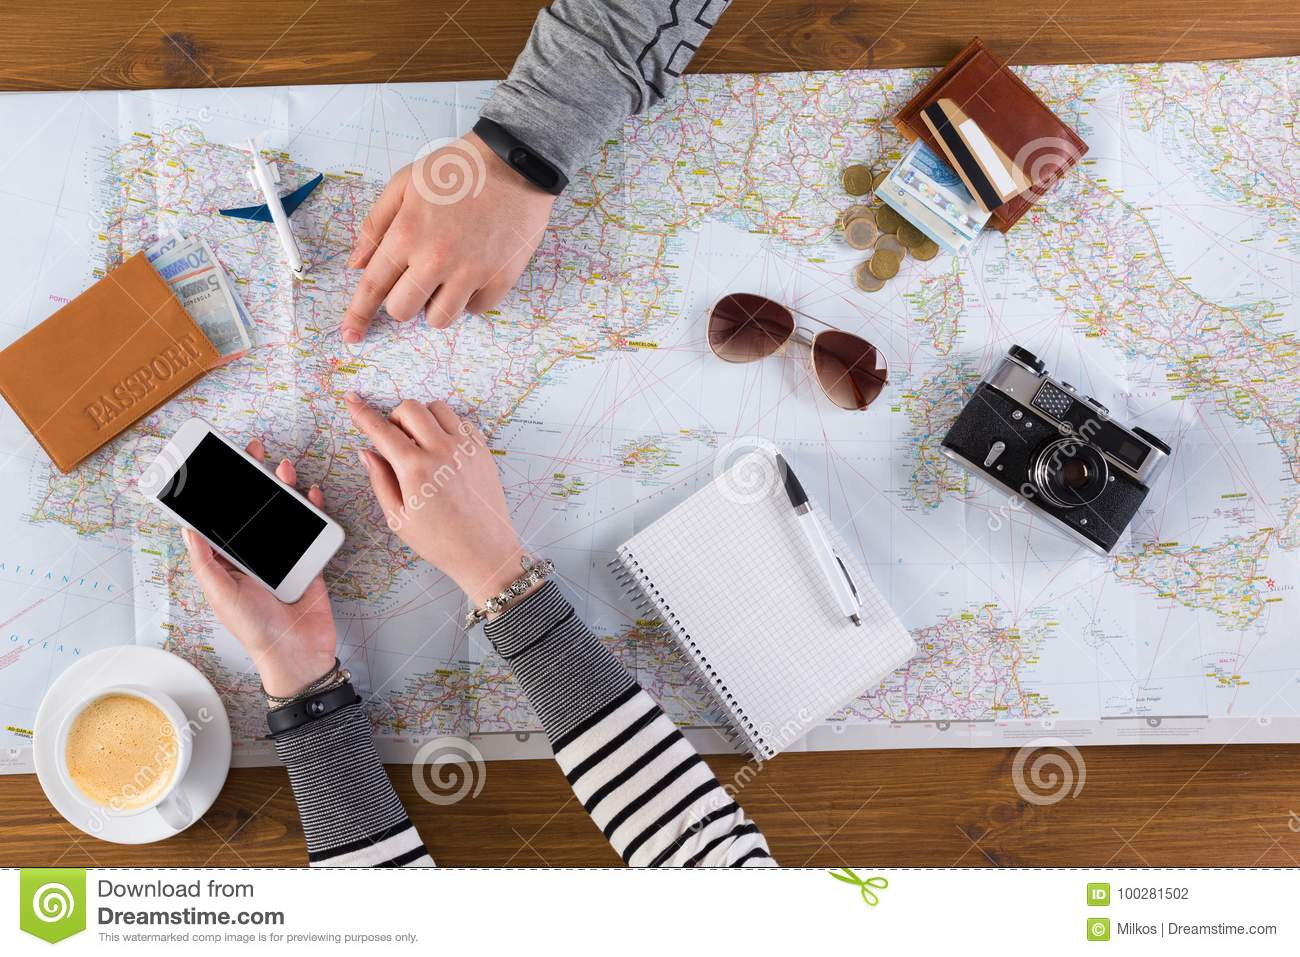 Couple planning travel to Madrid, Spain